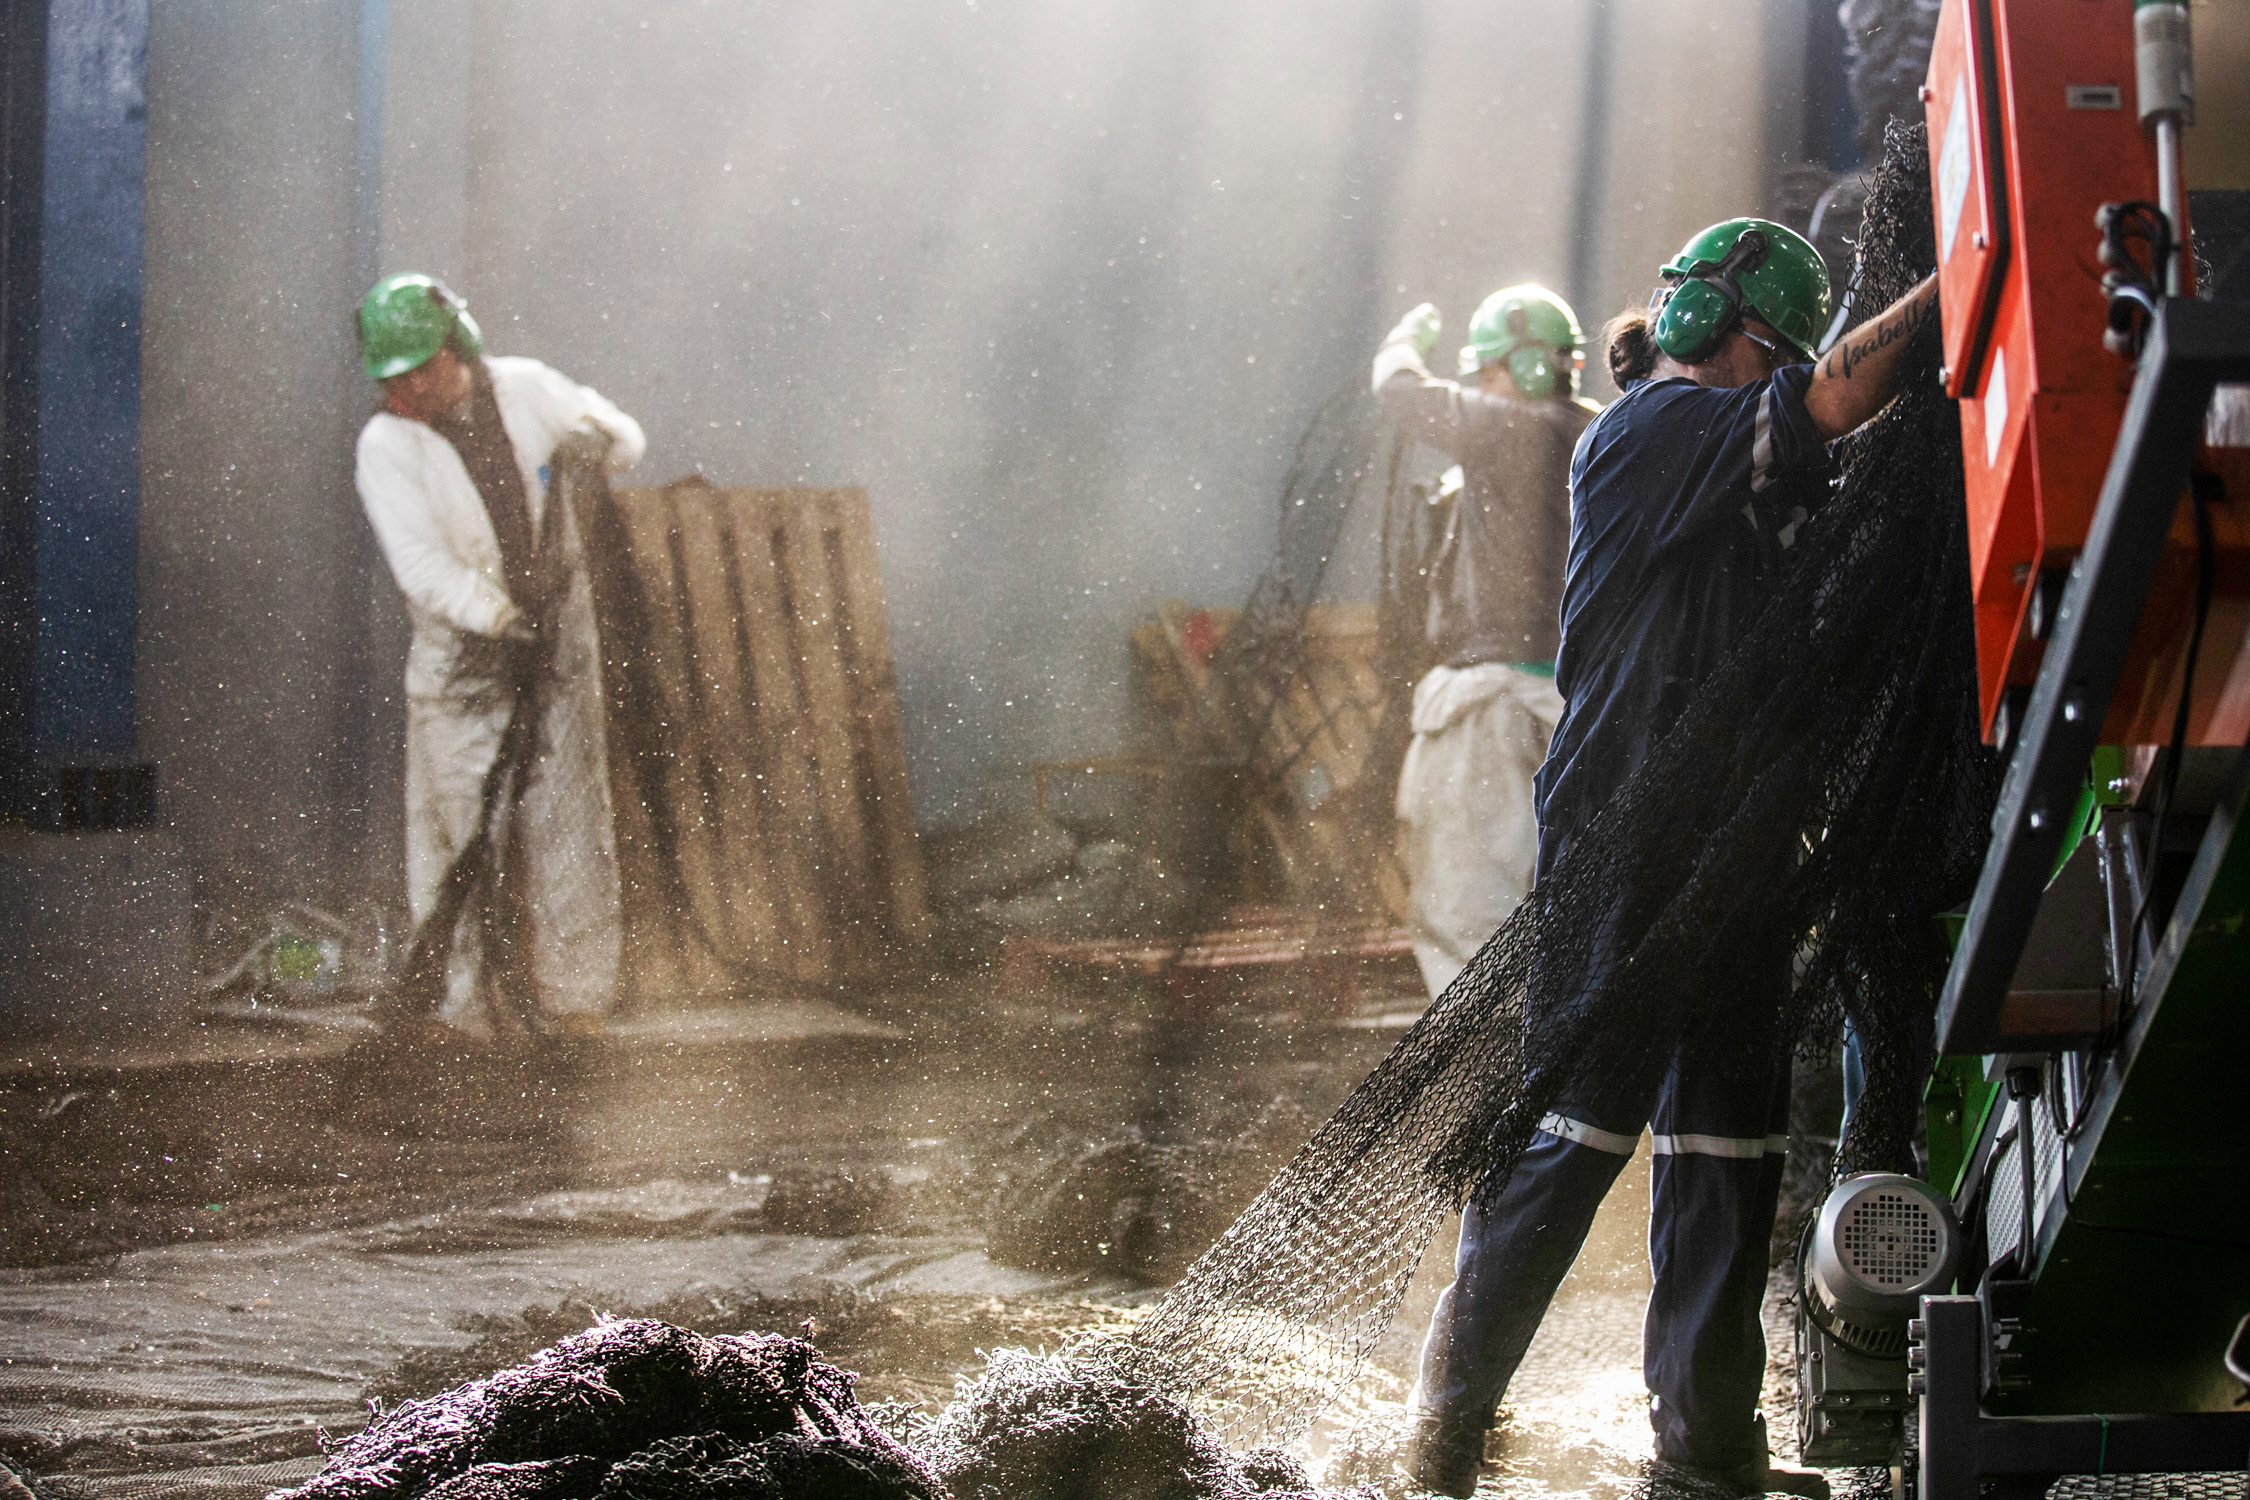 Workers on cutting and shredding stages at Bureo's Warehouse in Concepción